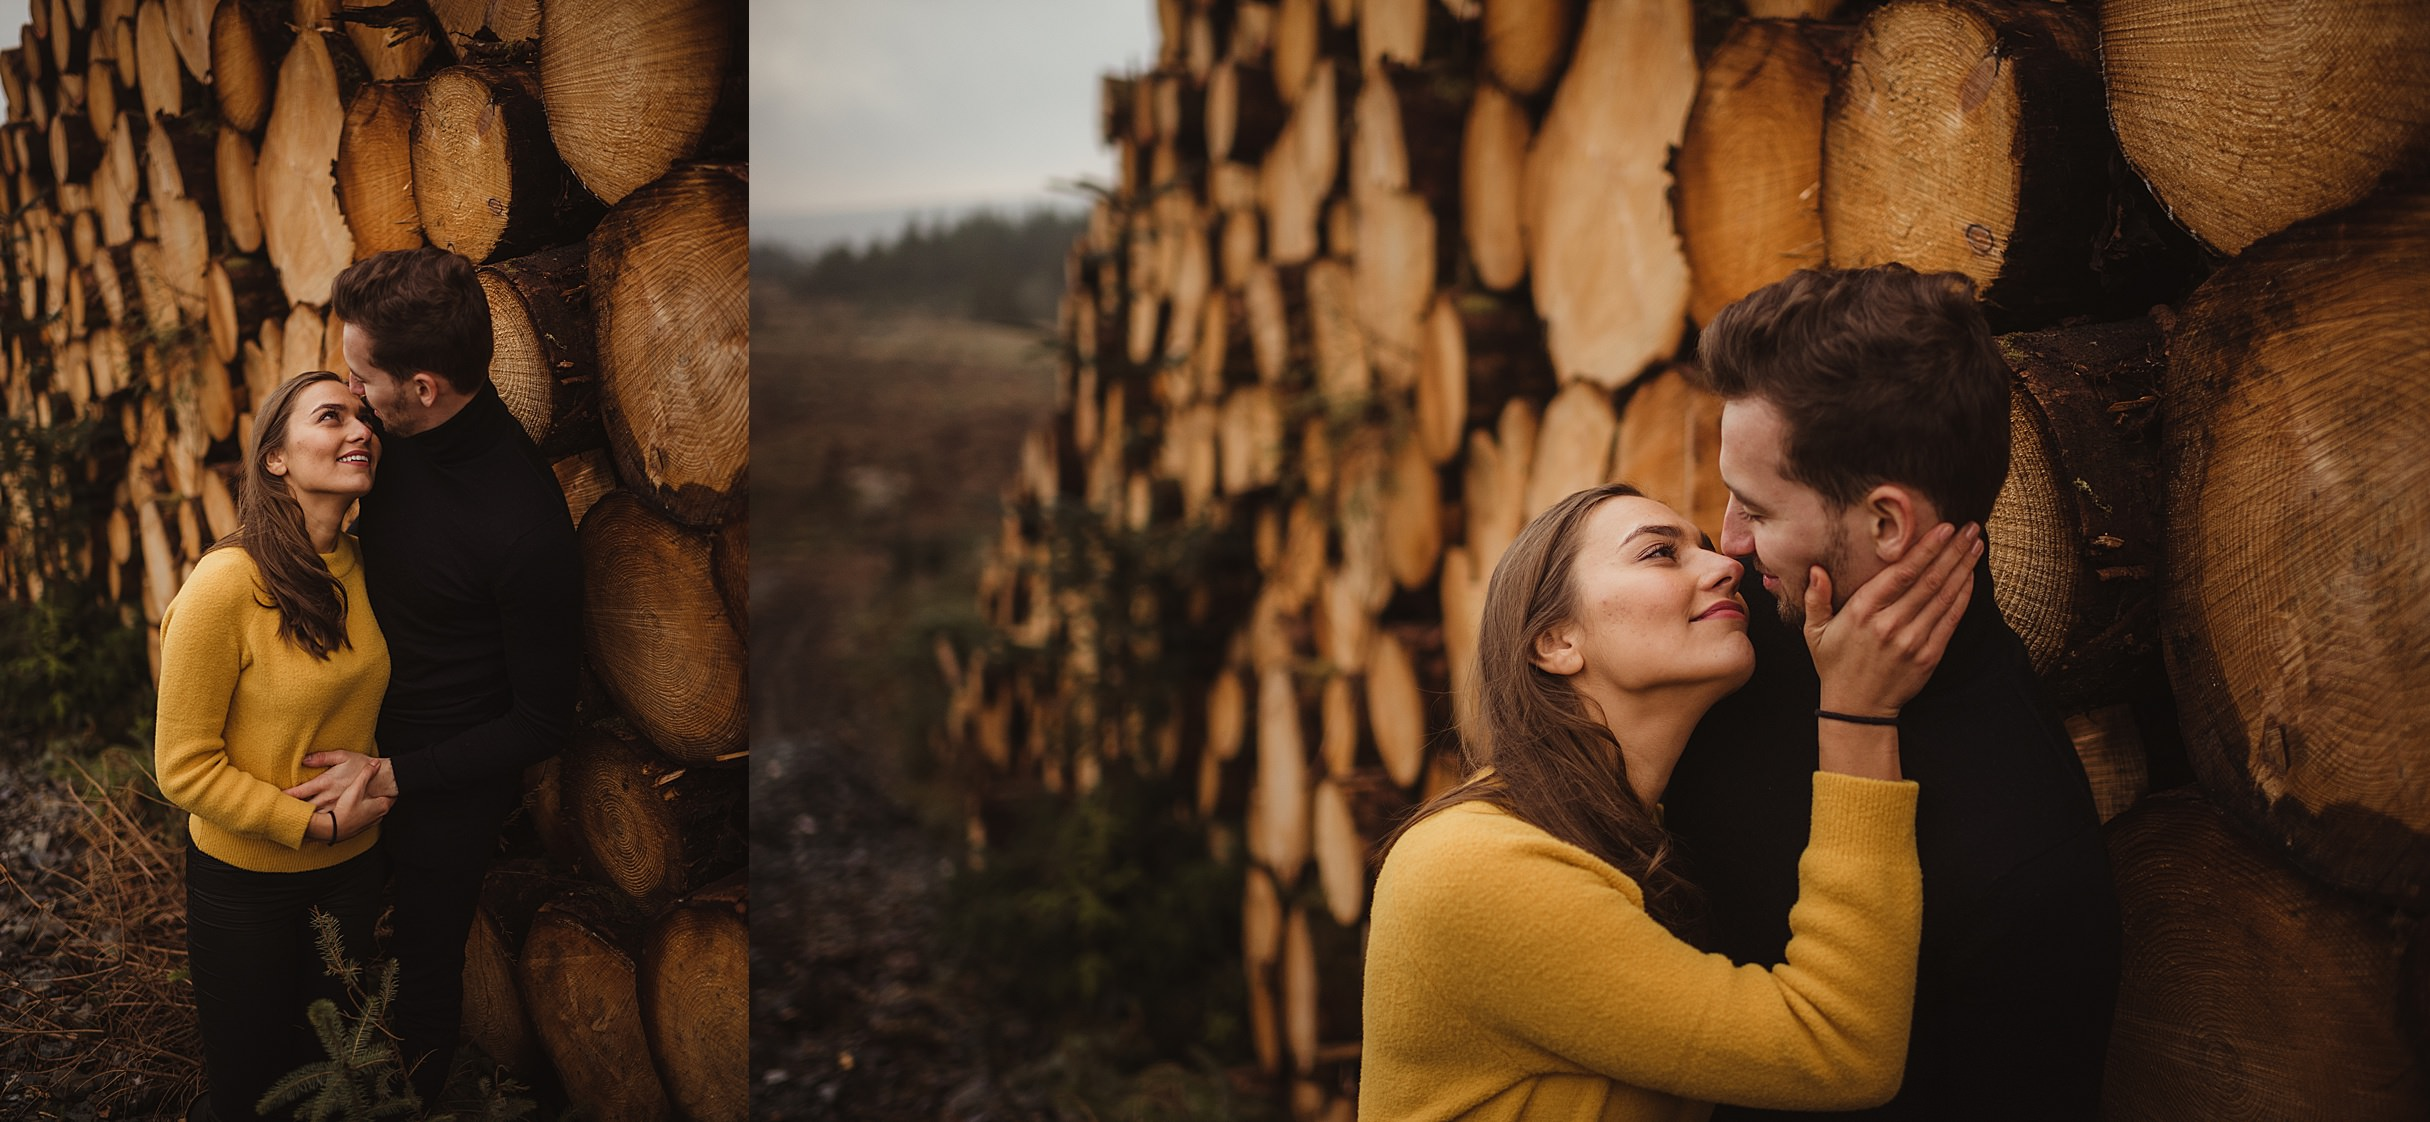 Wicklow-Mountains-Engagement-Dublin-Photographer-Session-71.jpg